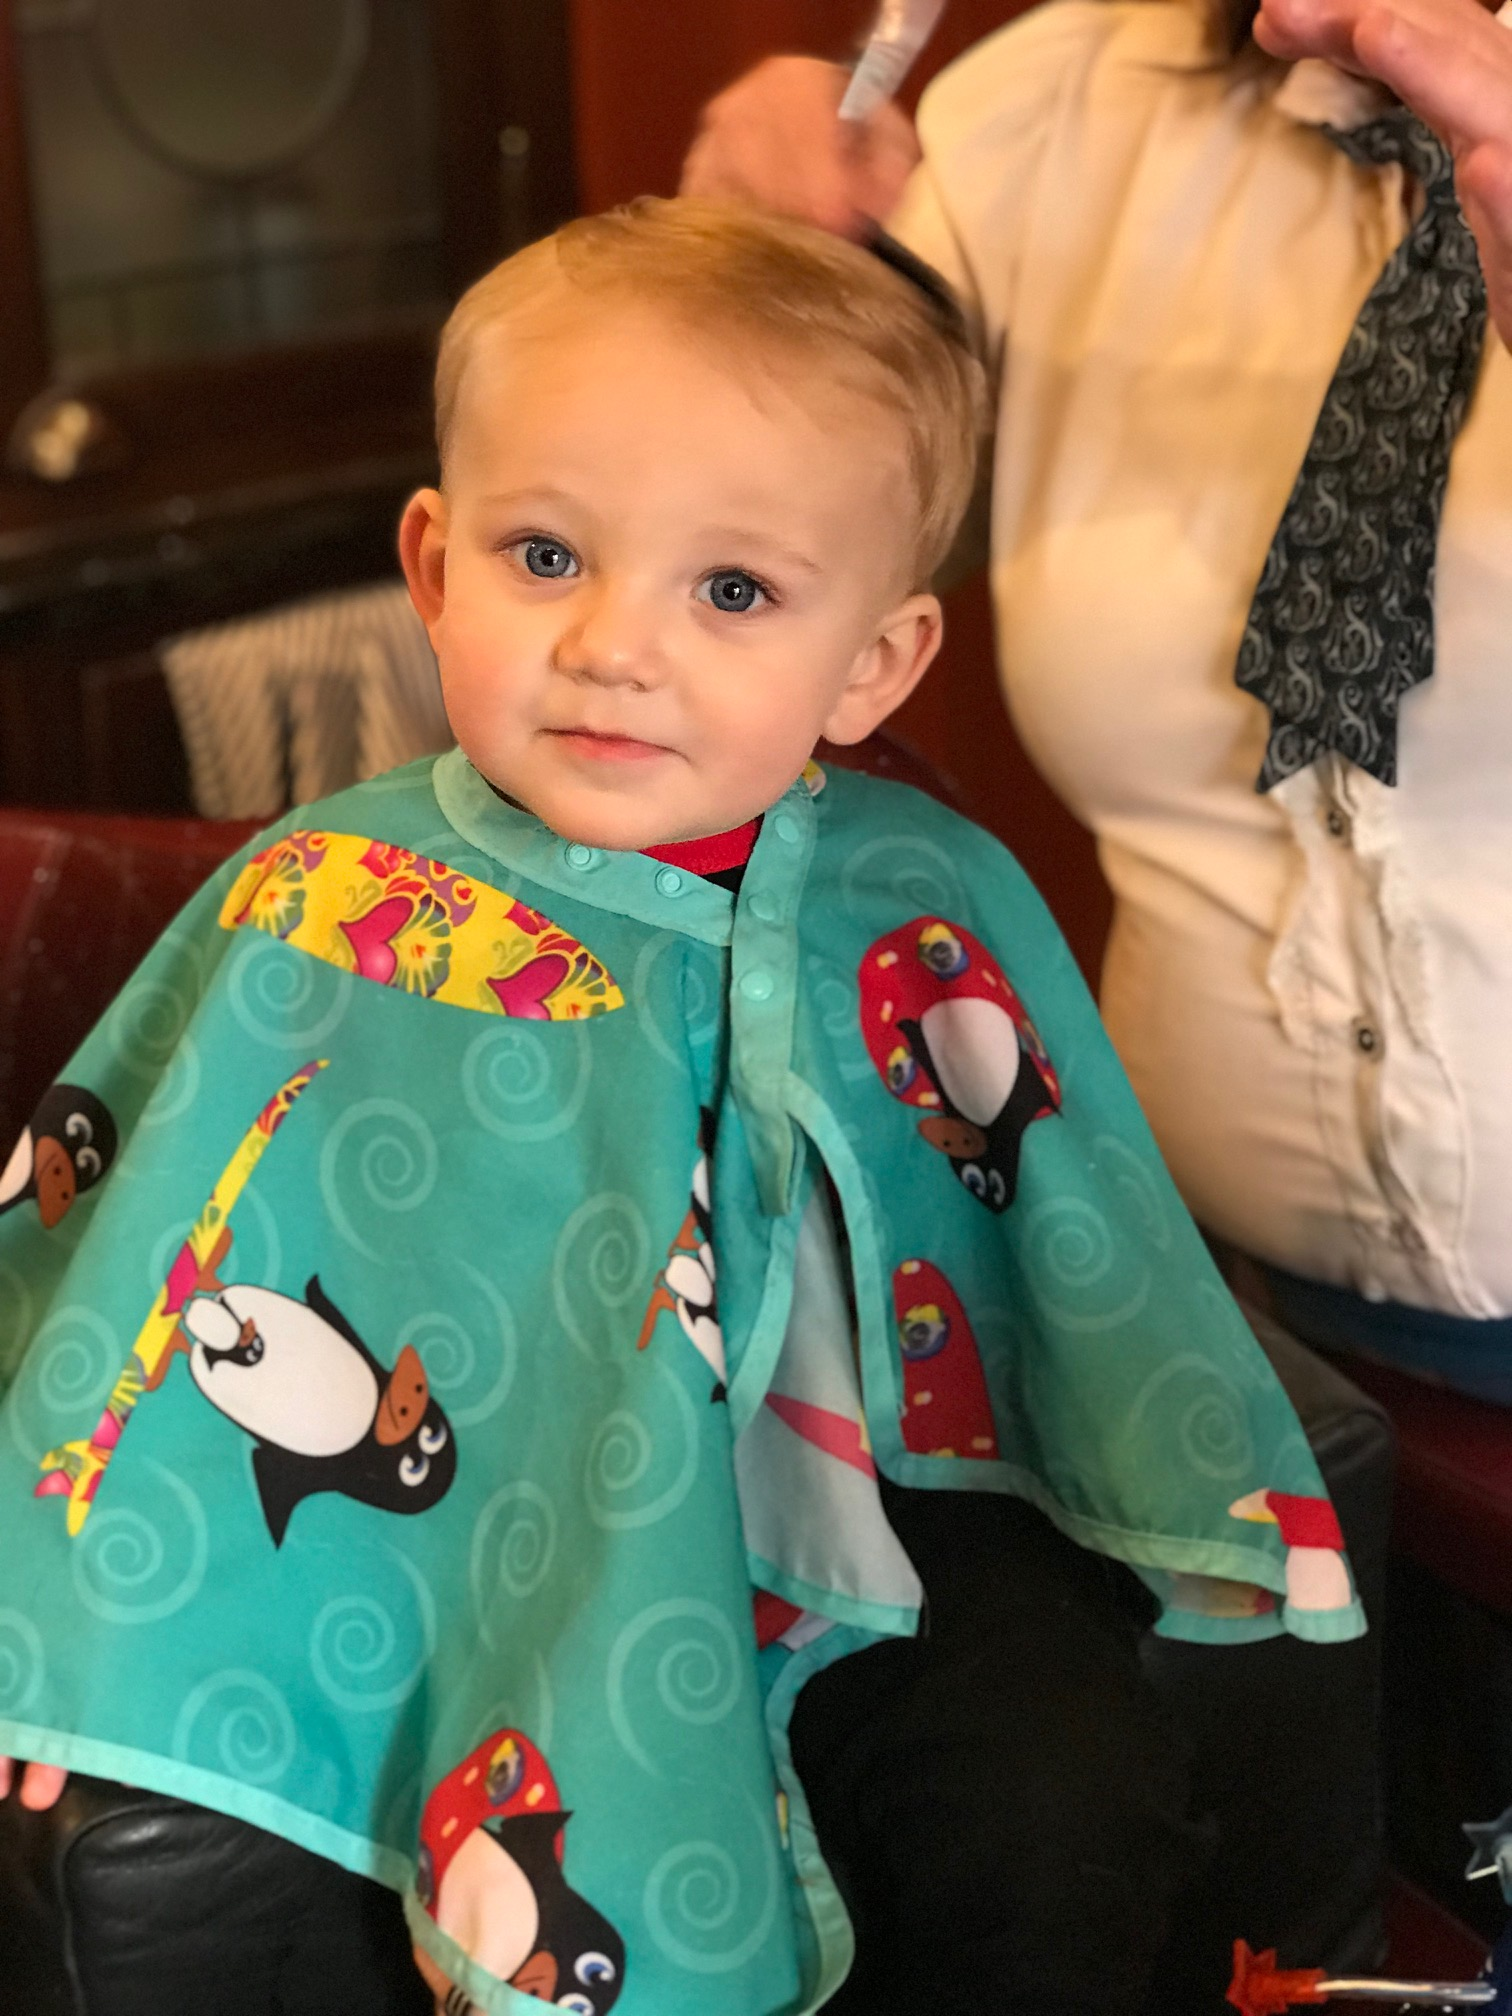 Baby's Second Haircut in March 2018